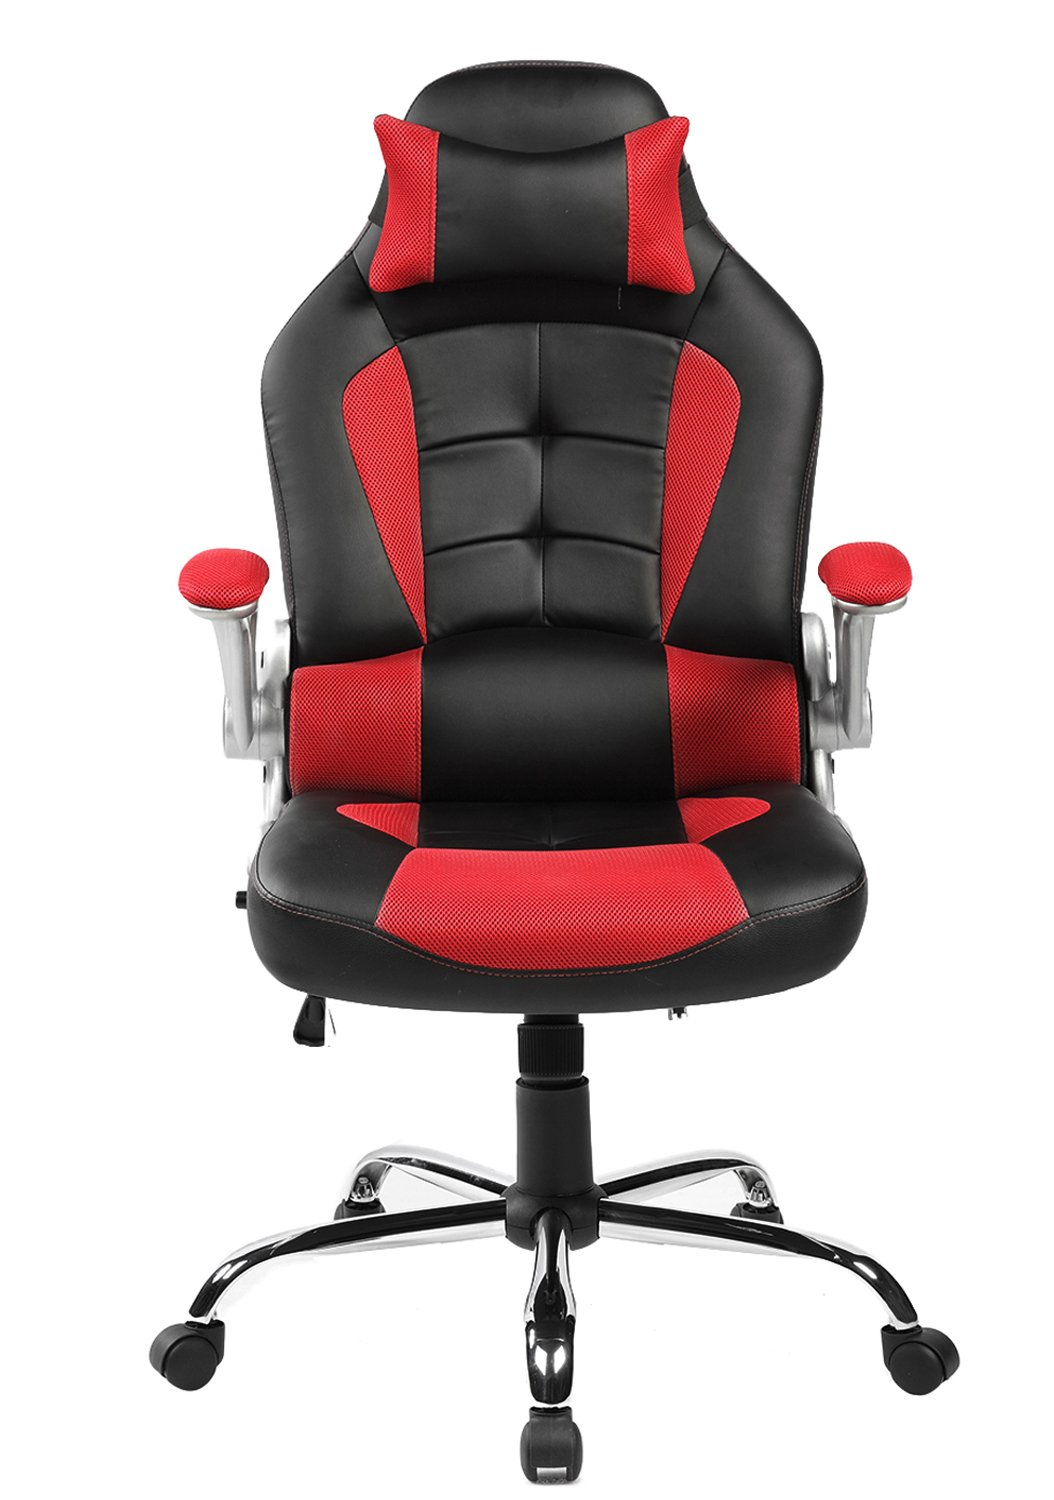 office recliner chairs. Amazon.com: Merax King Series High-back Ergonomic Pu Leather Office Chair Racing Style Swivel Computer Desk Lumbar Support Napping (Red): Recliner Chairs -